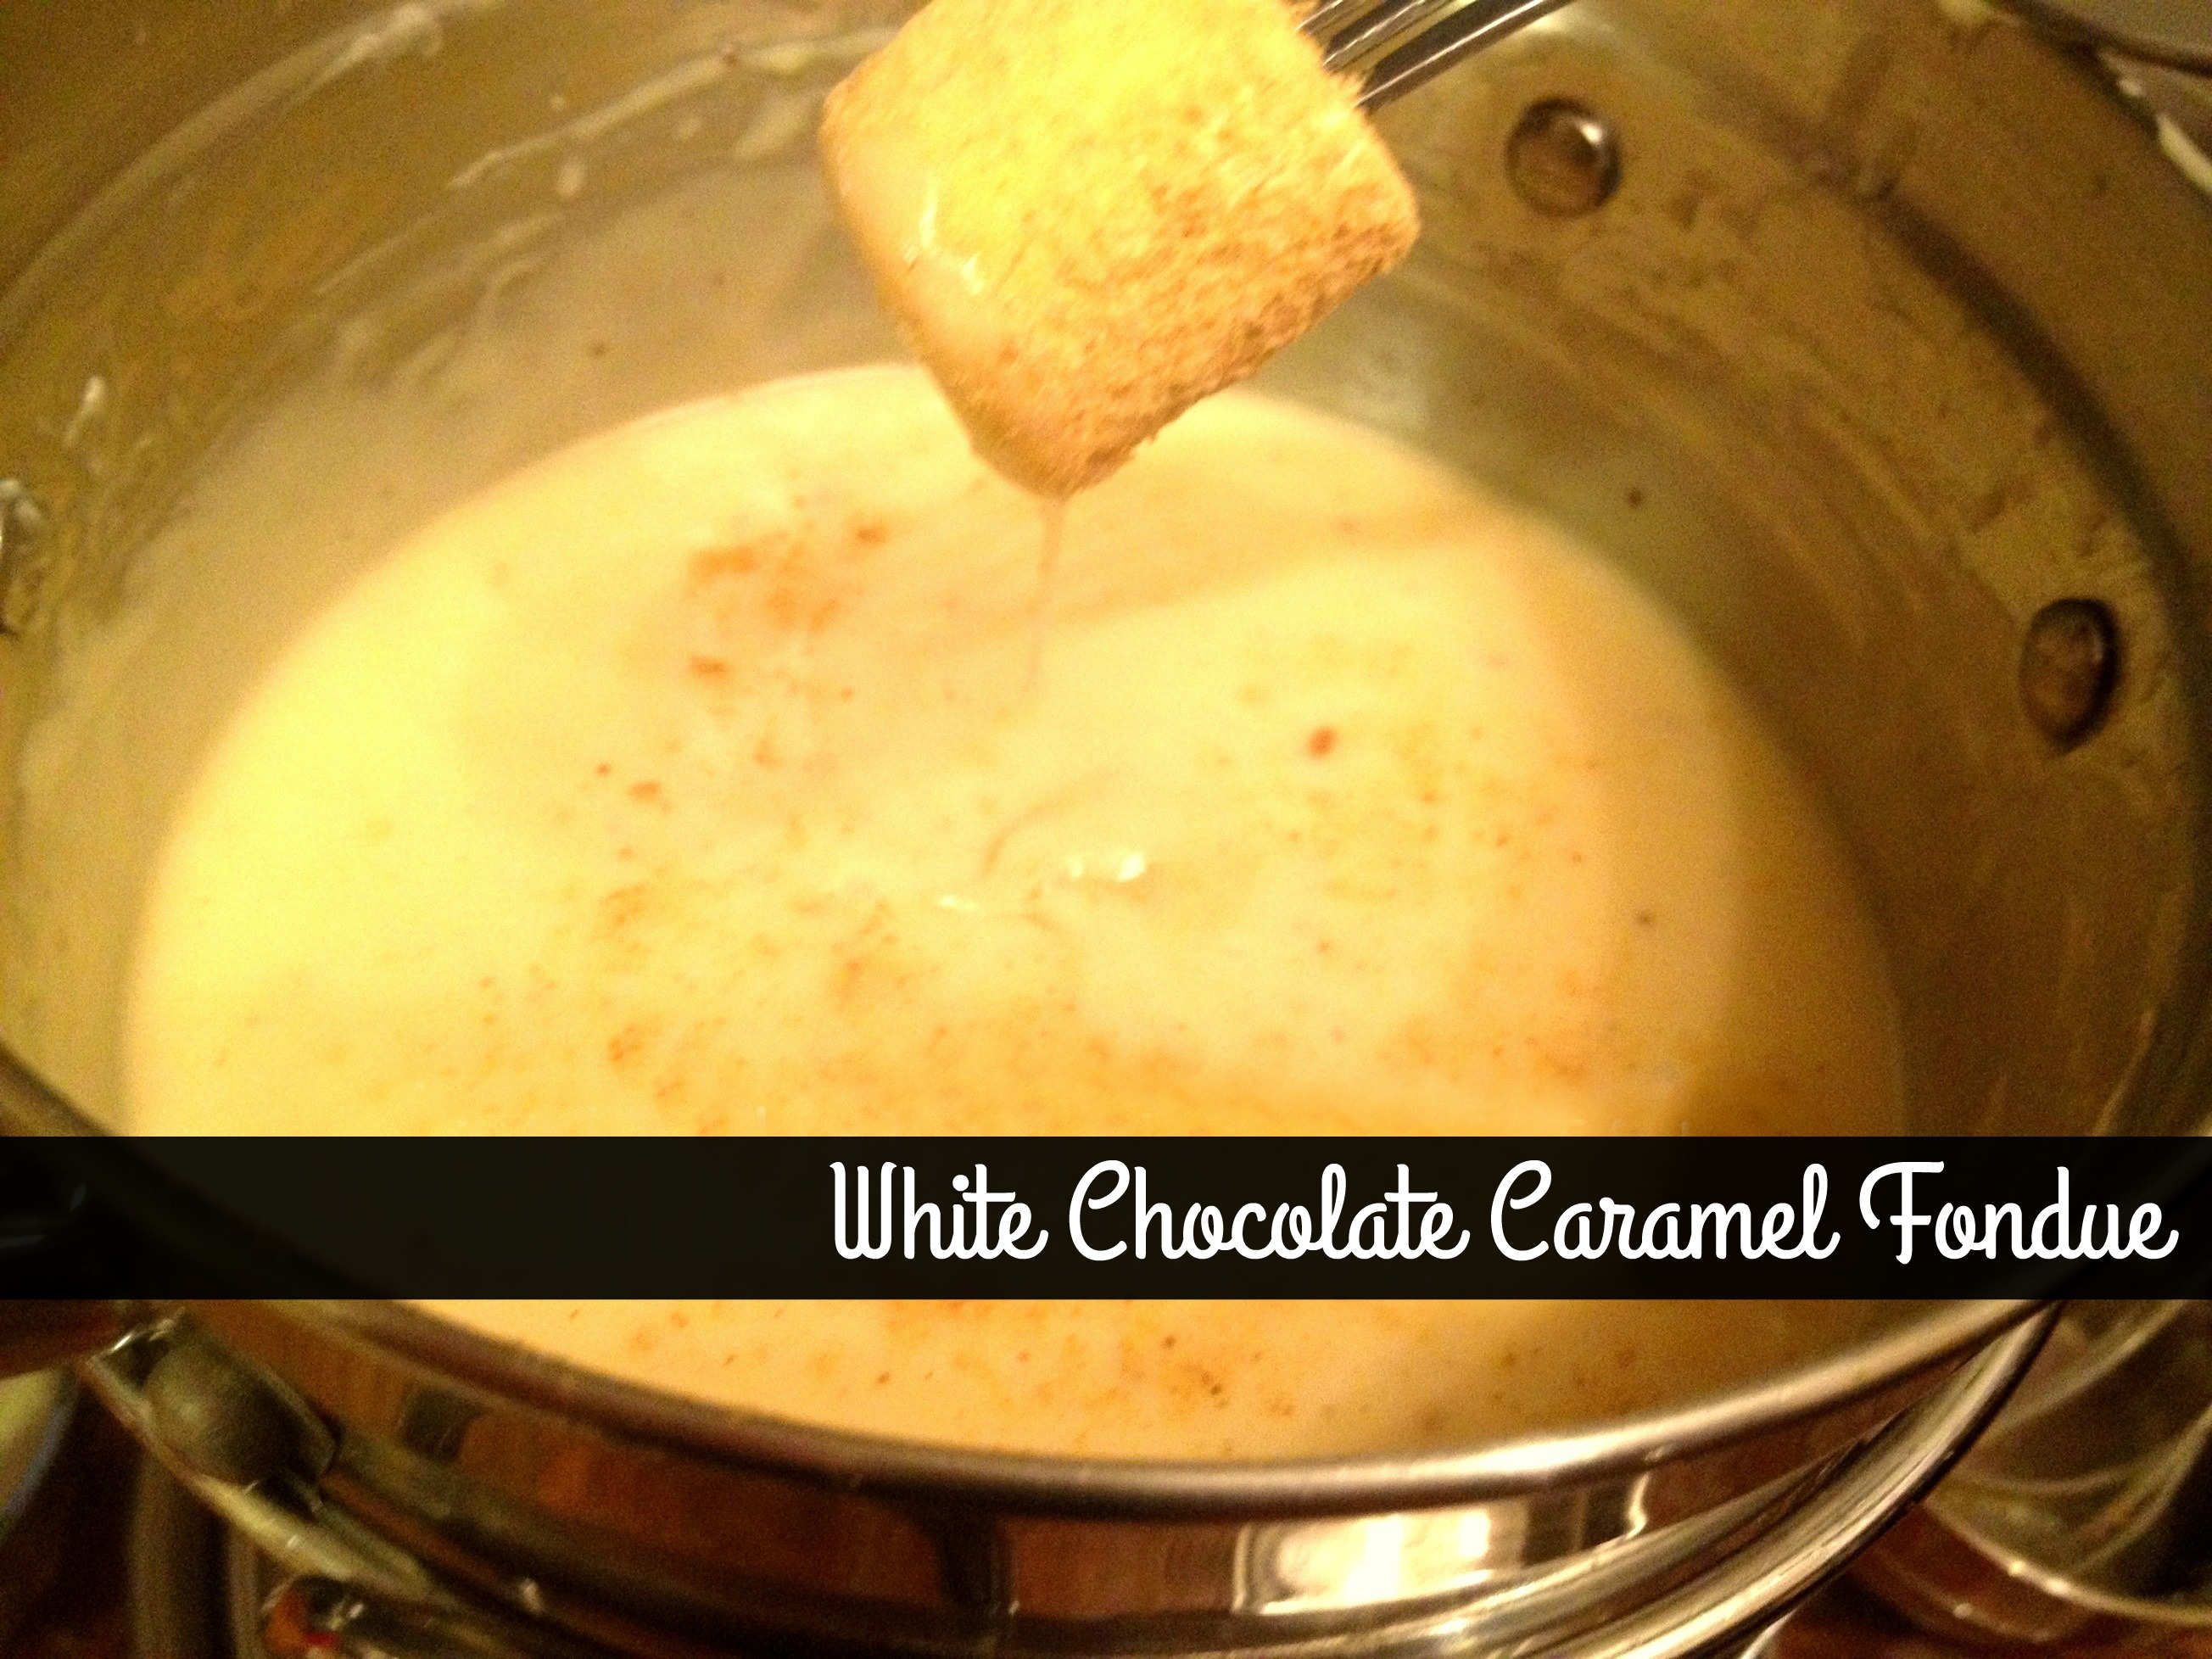 White Chocolate Caramel Fondue